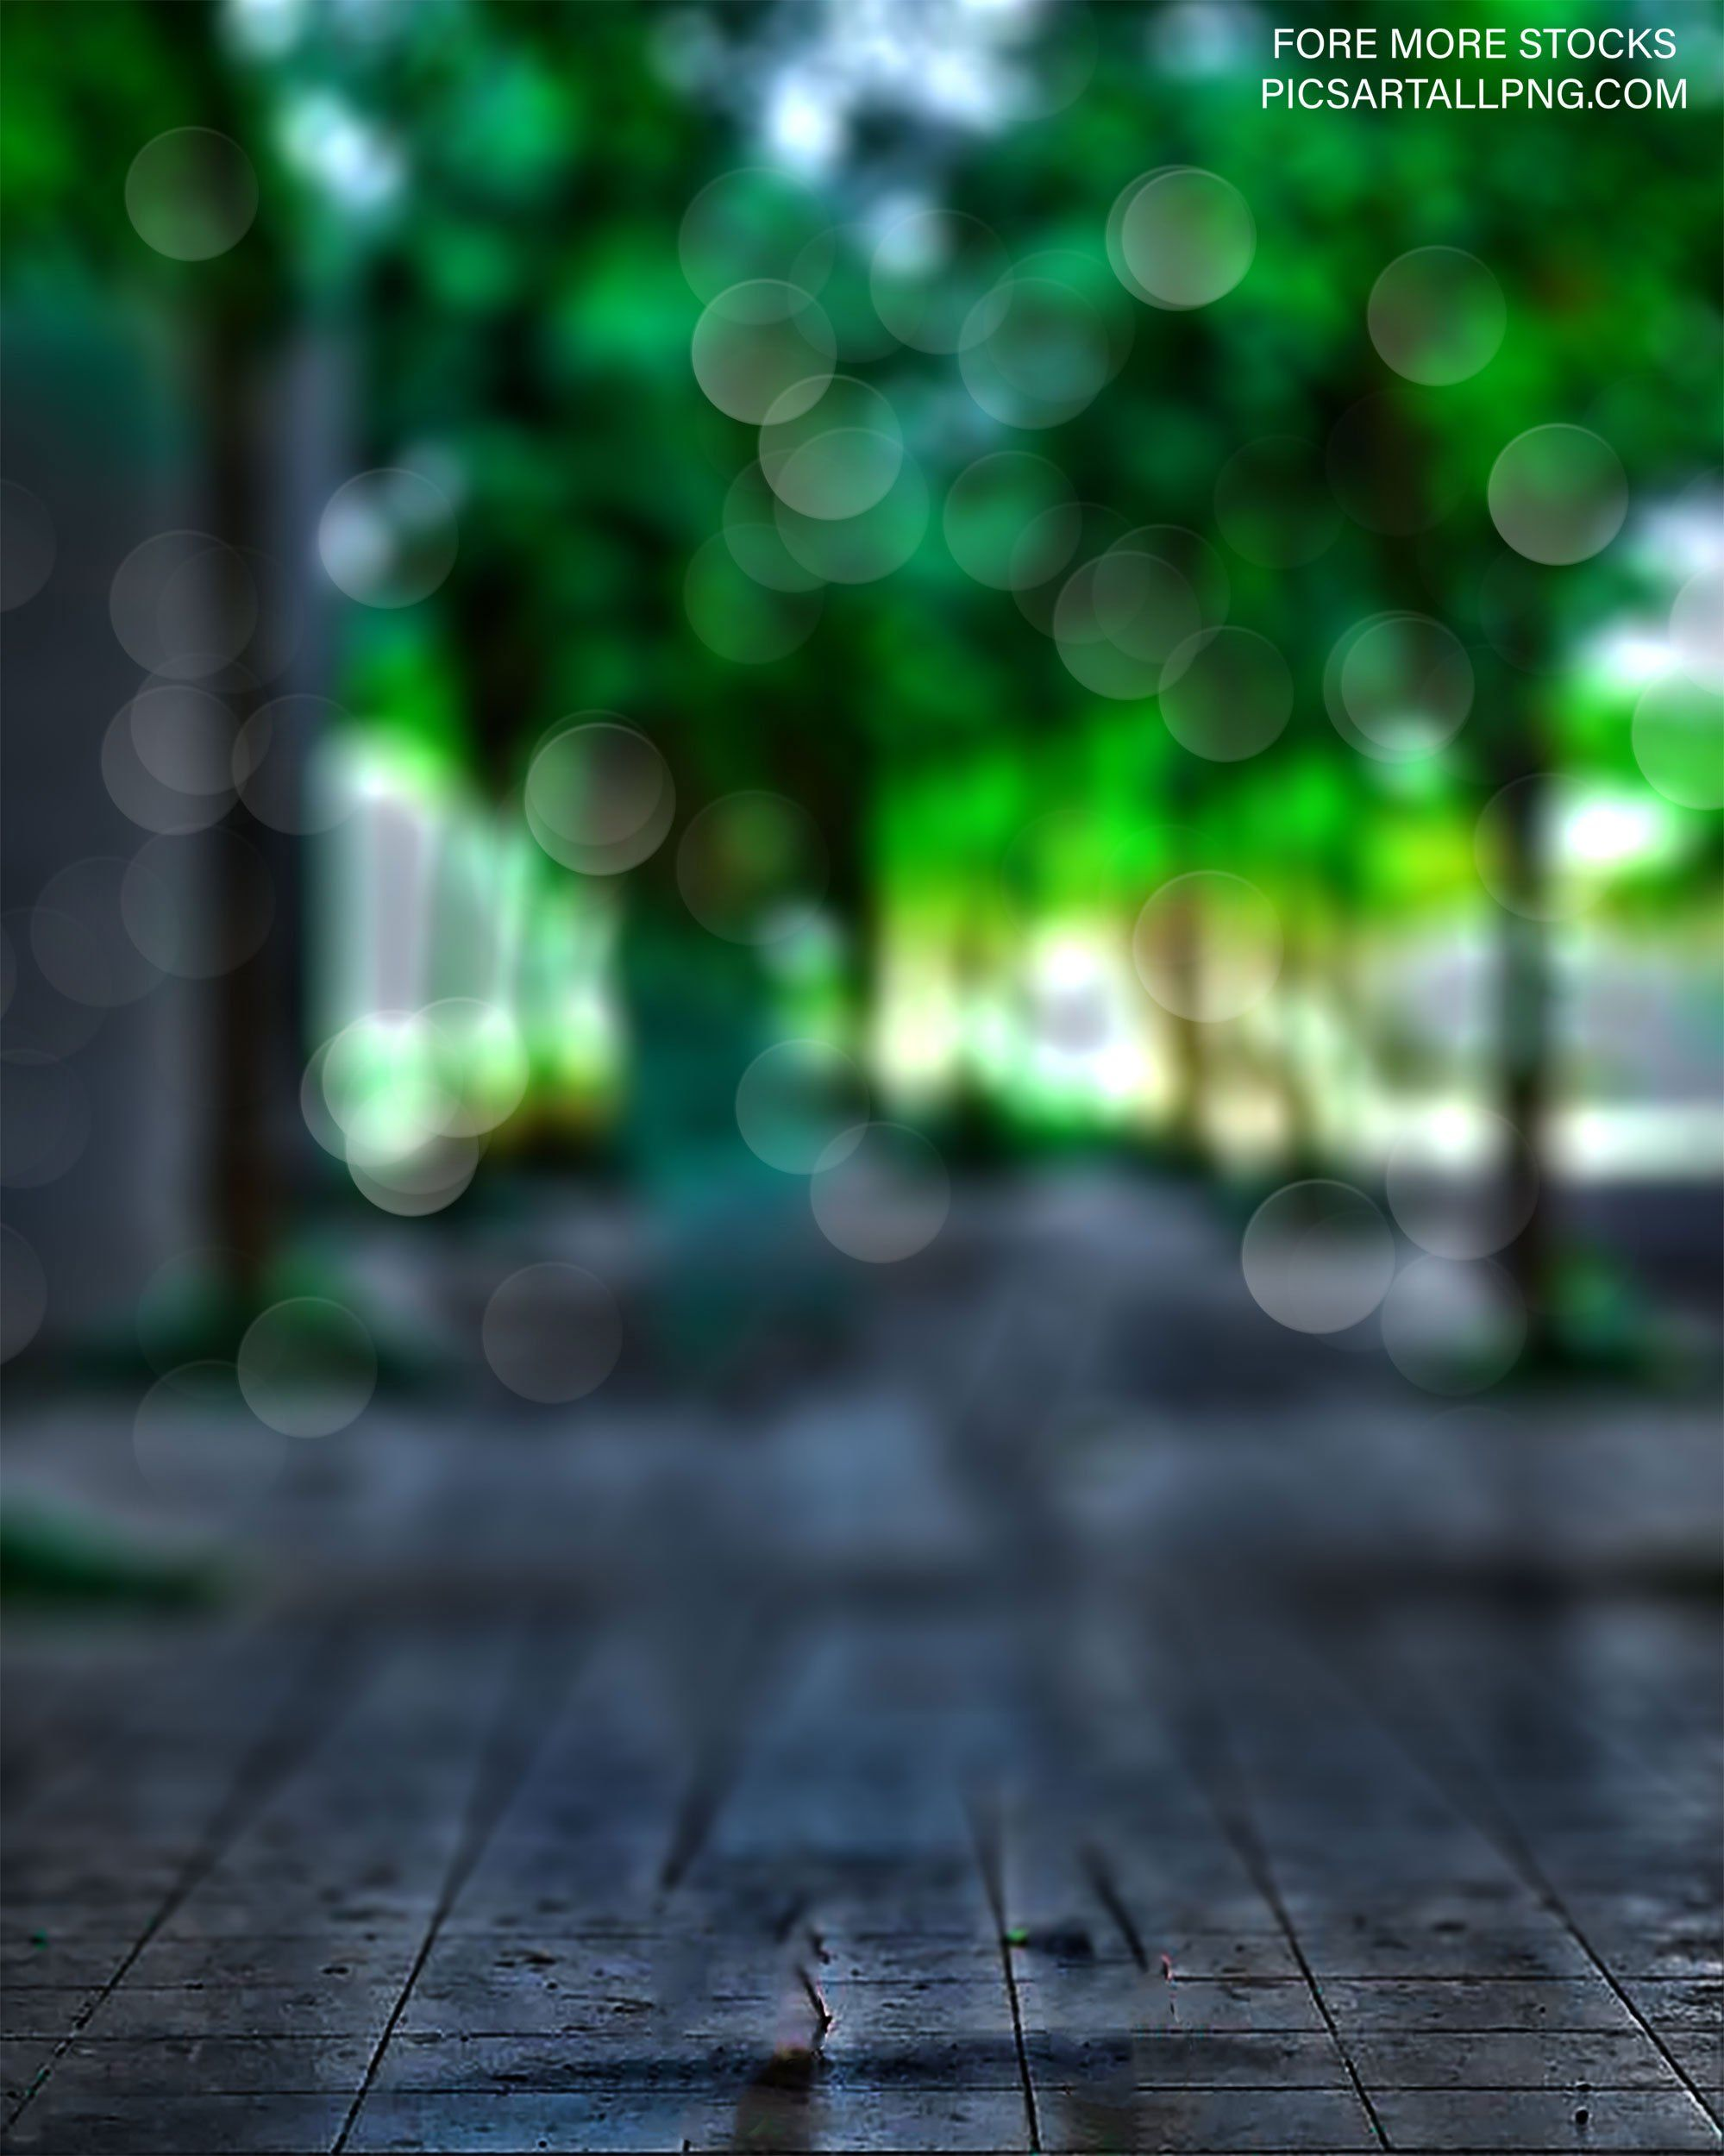 Bokeh Effect Photoshop Picsartallpng Com Blur Photo Background Black Background Images Studio Background Images